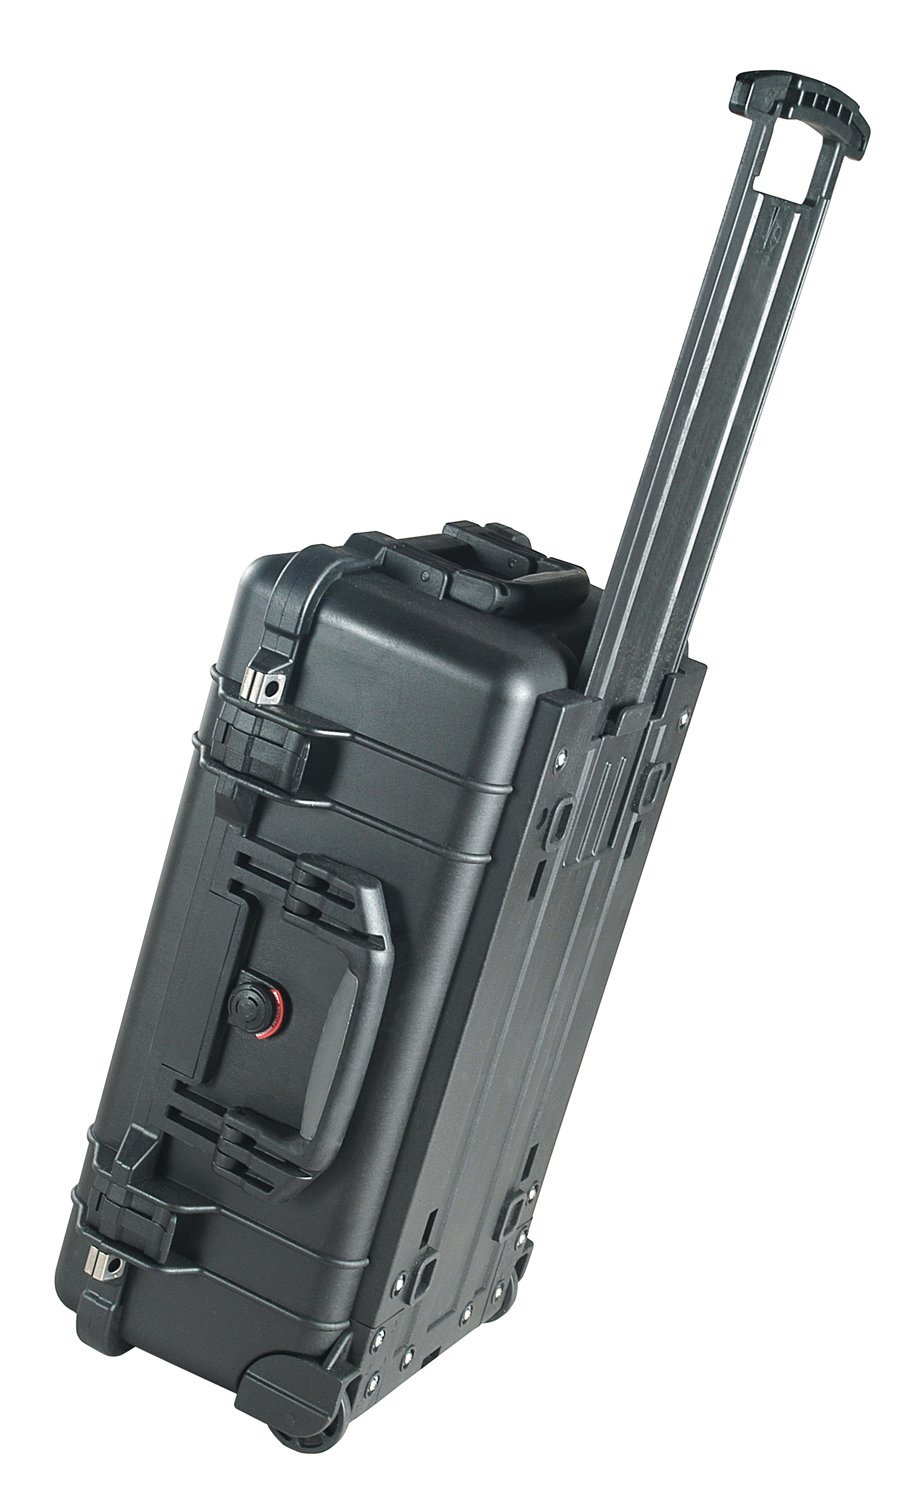 Amazon.com: Pelican 1510 Case With Foam (Black): Camera & Photo